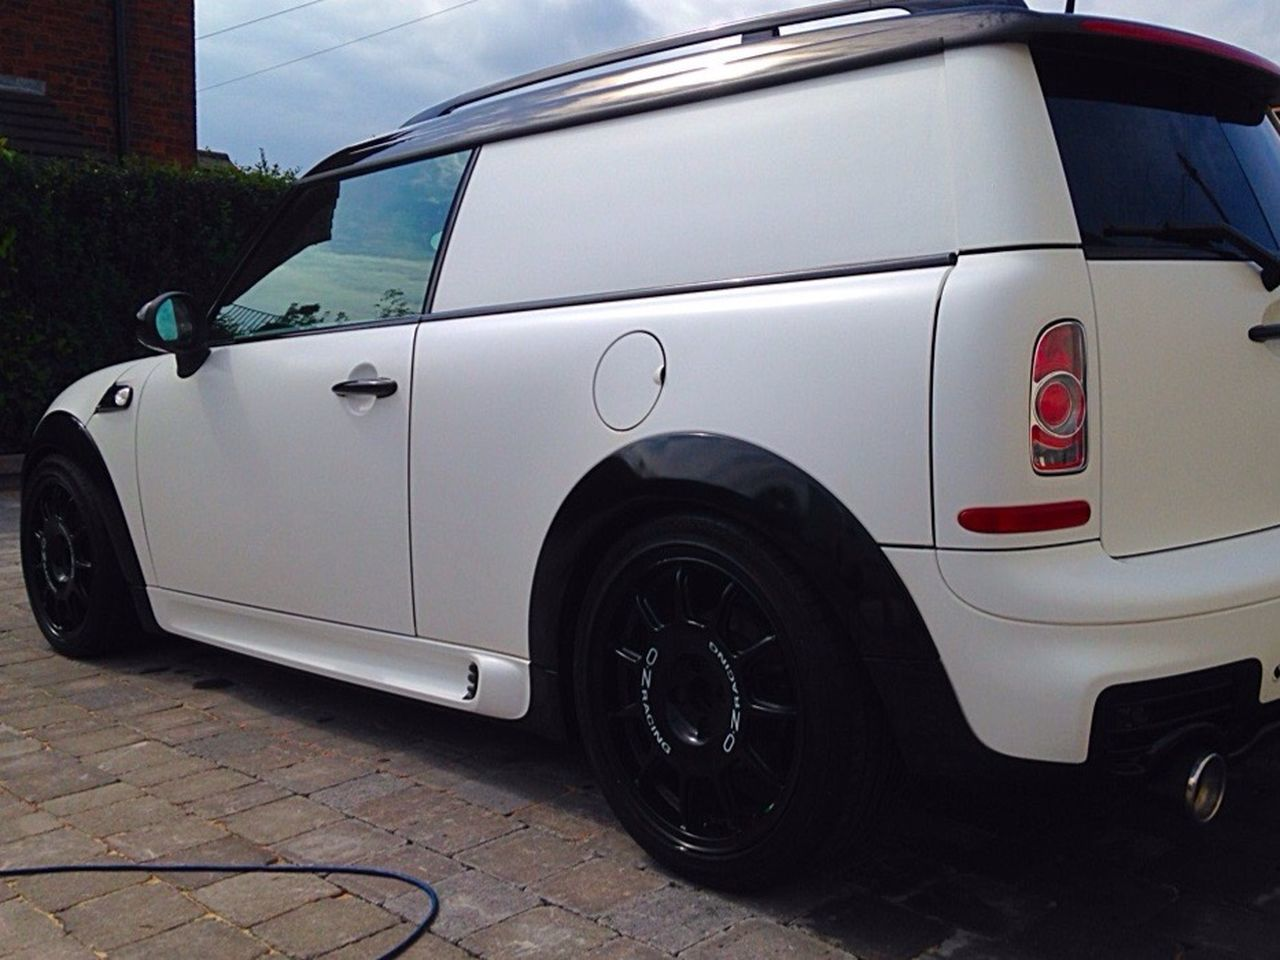 Gr8reflectiondetailing Miniclubvan Detailed To Perfection Wrapped In White Race Van